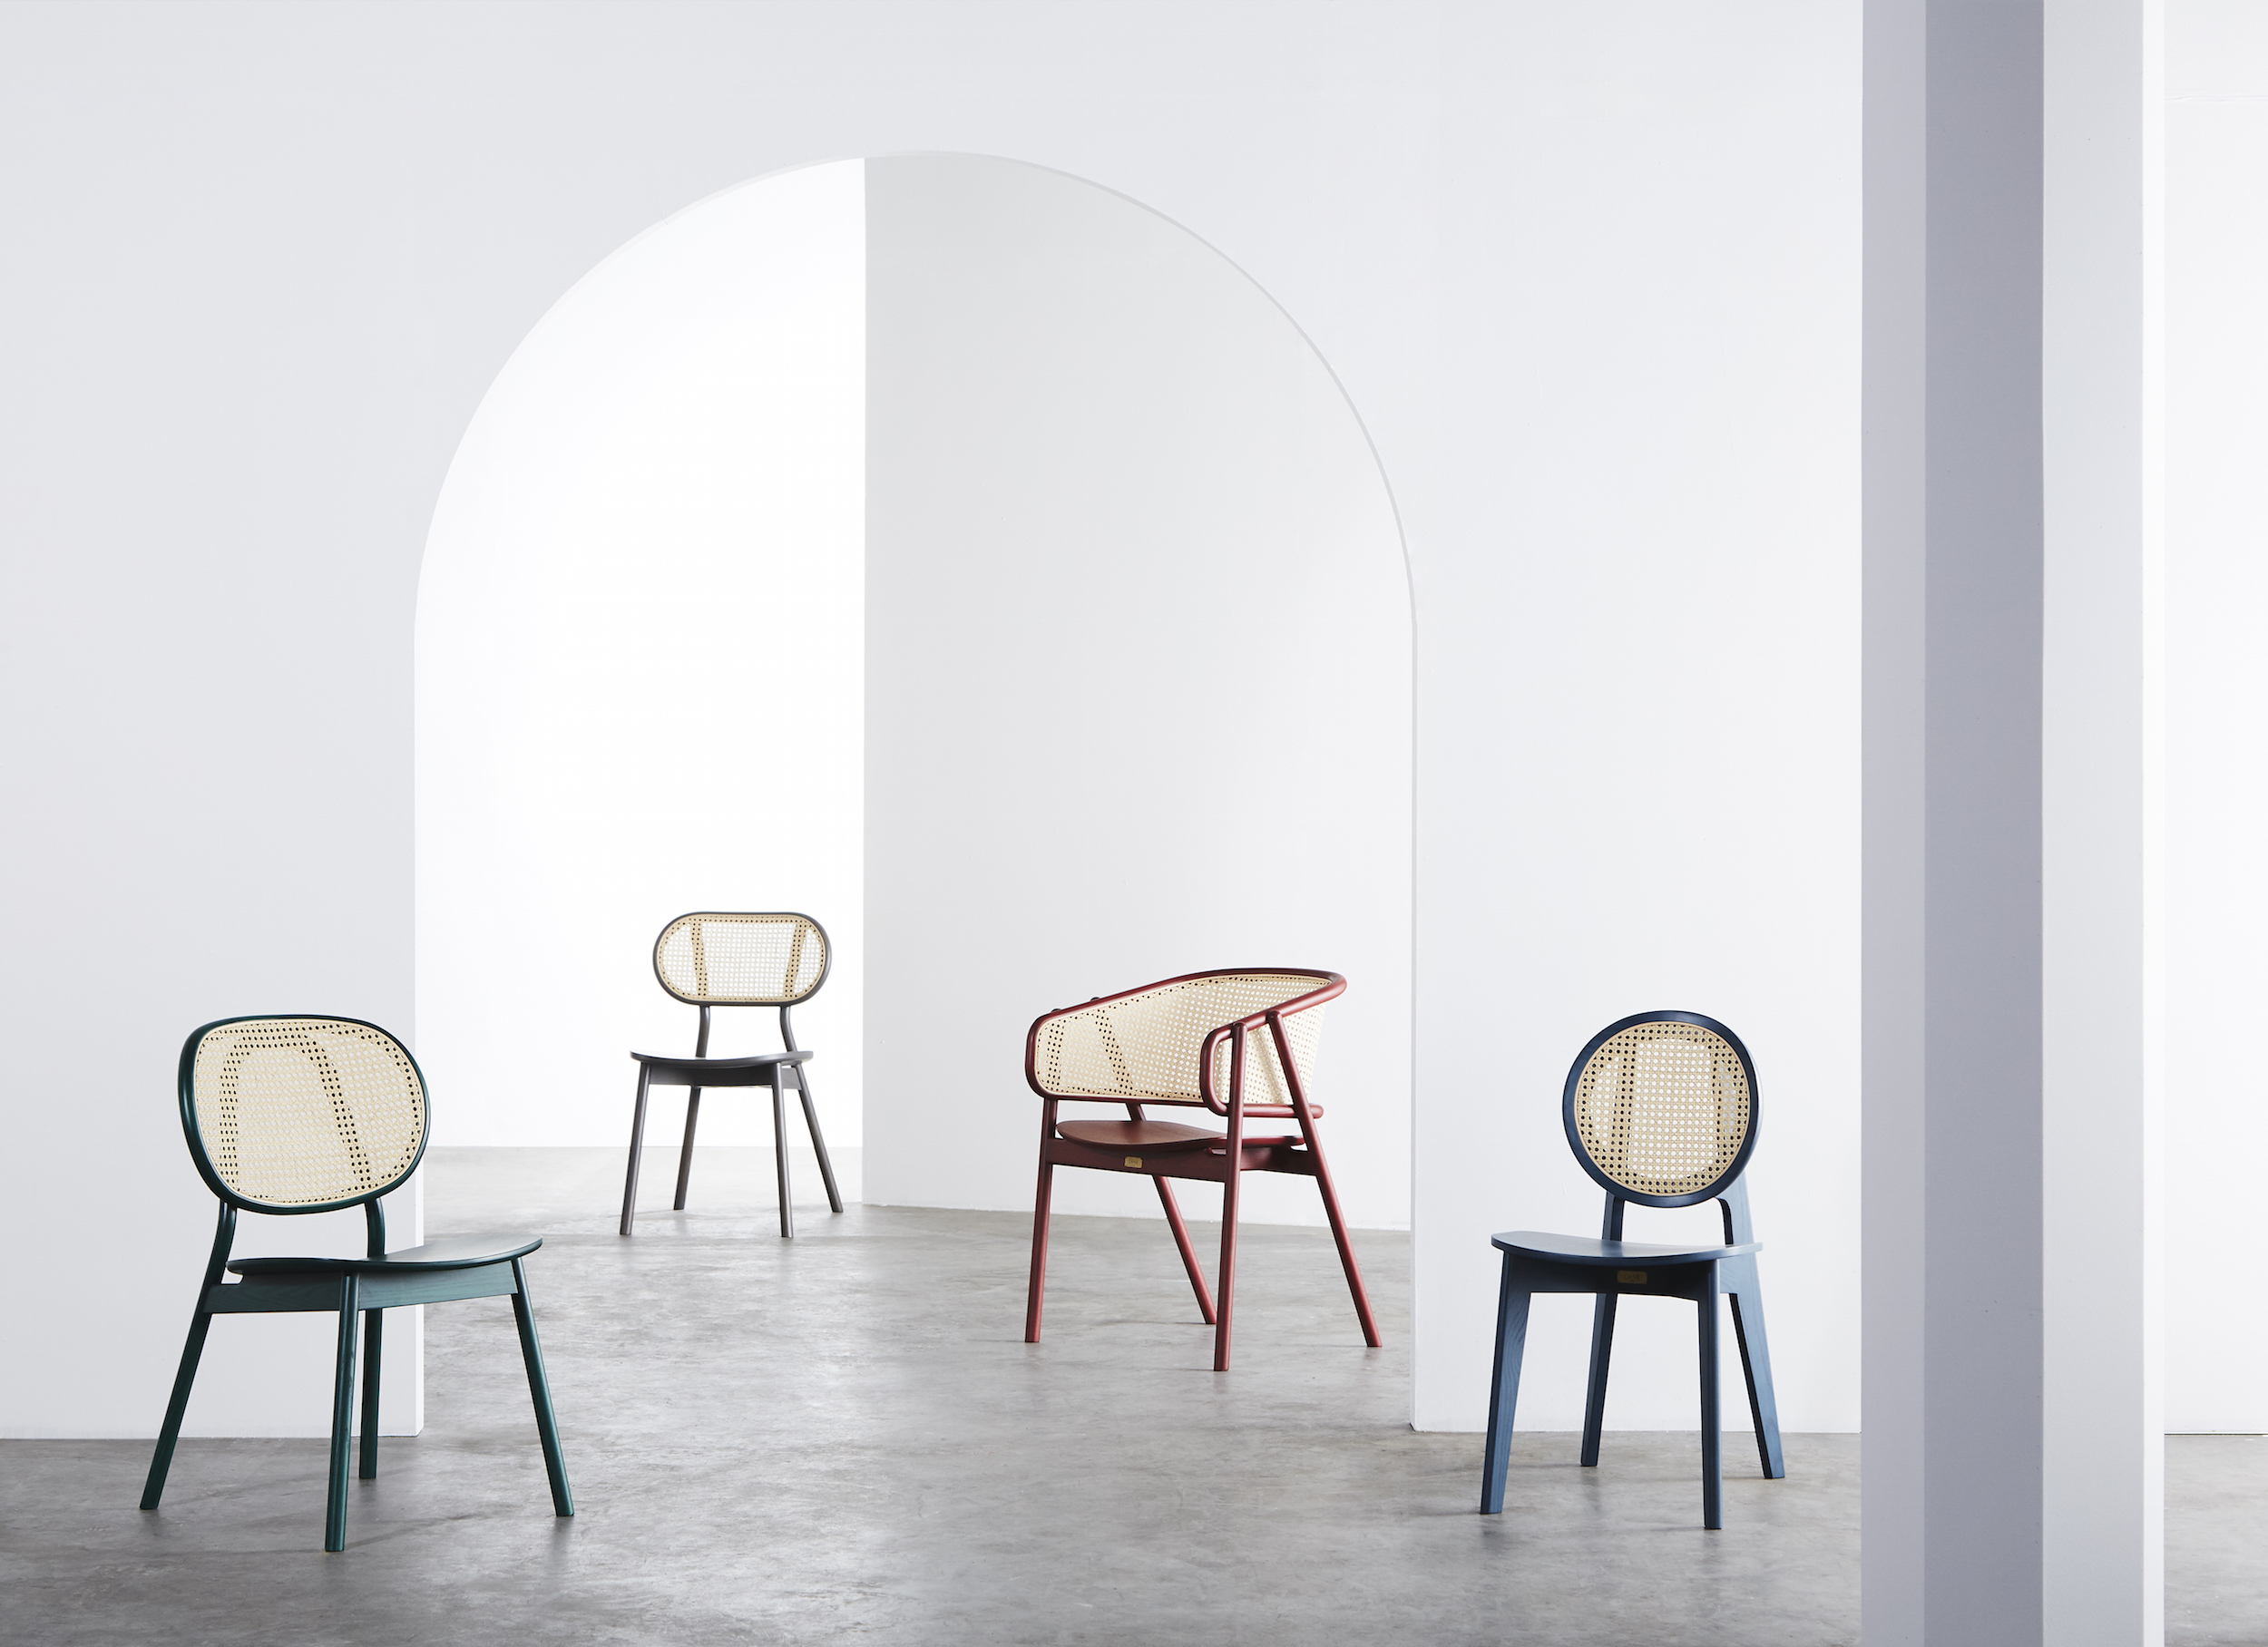 Cane Chair - 04  (Tropical Green) /  Cane Chair - 03  (Light Grey) /  Cane Armchair - 01  (Dark Red) /  Cane Chair - 02  (Ocean Blue)